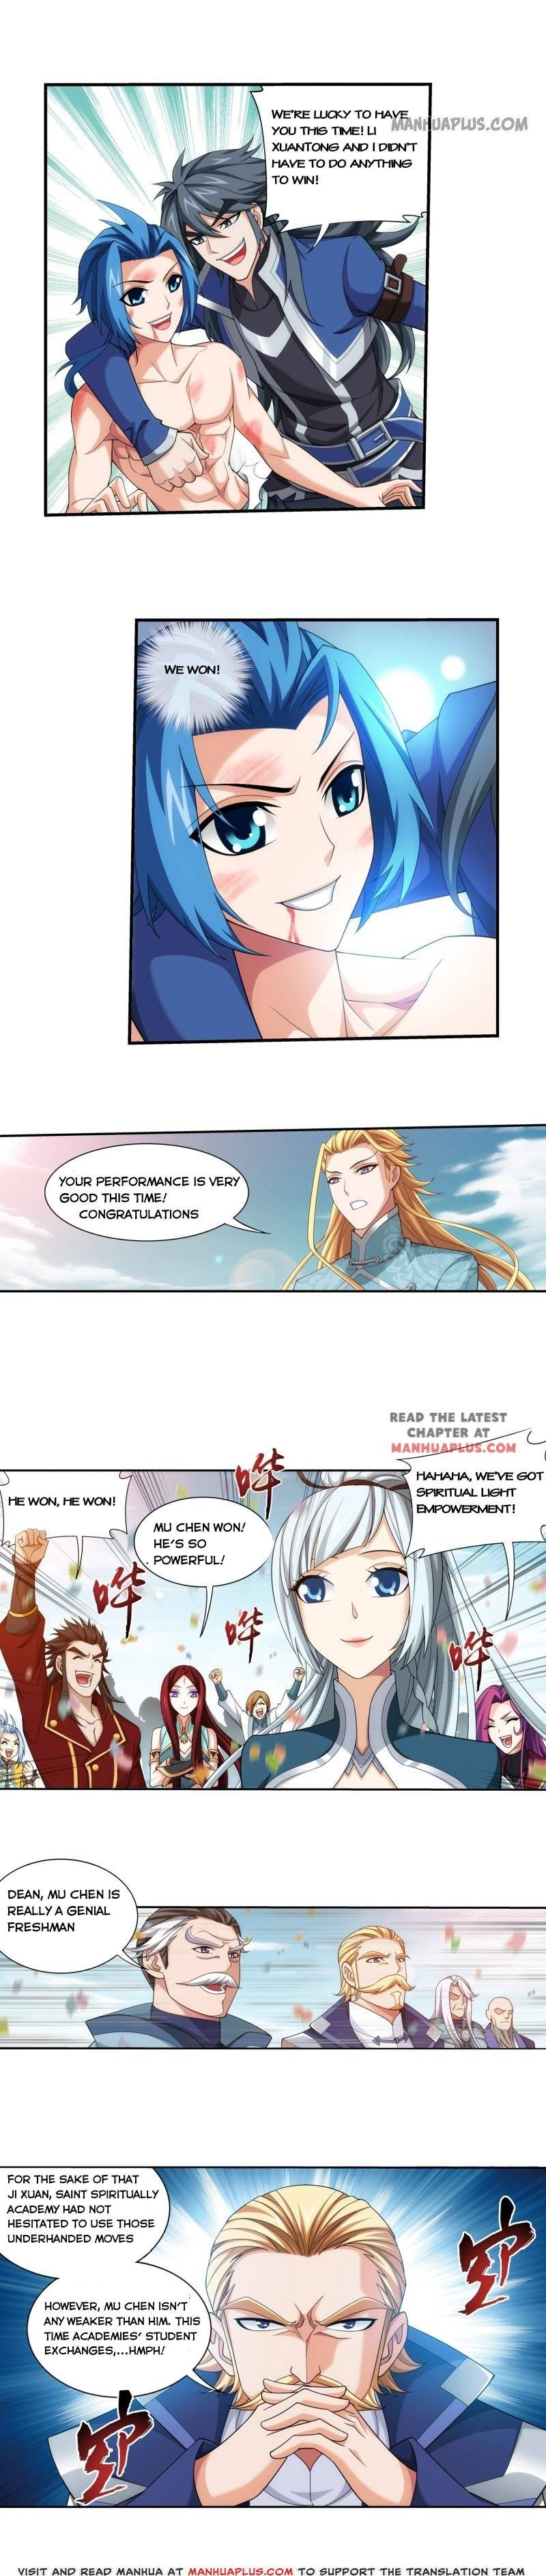 The Great Ruler ch.169